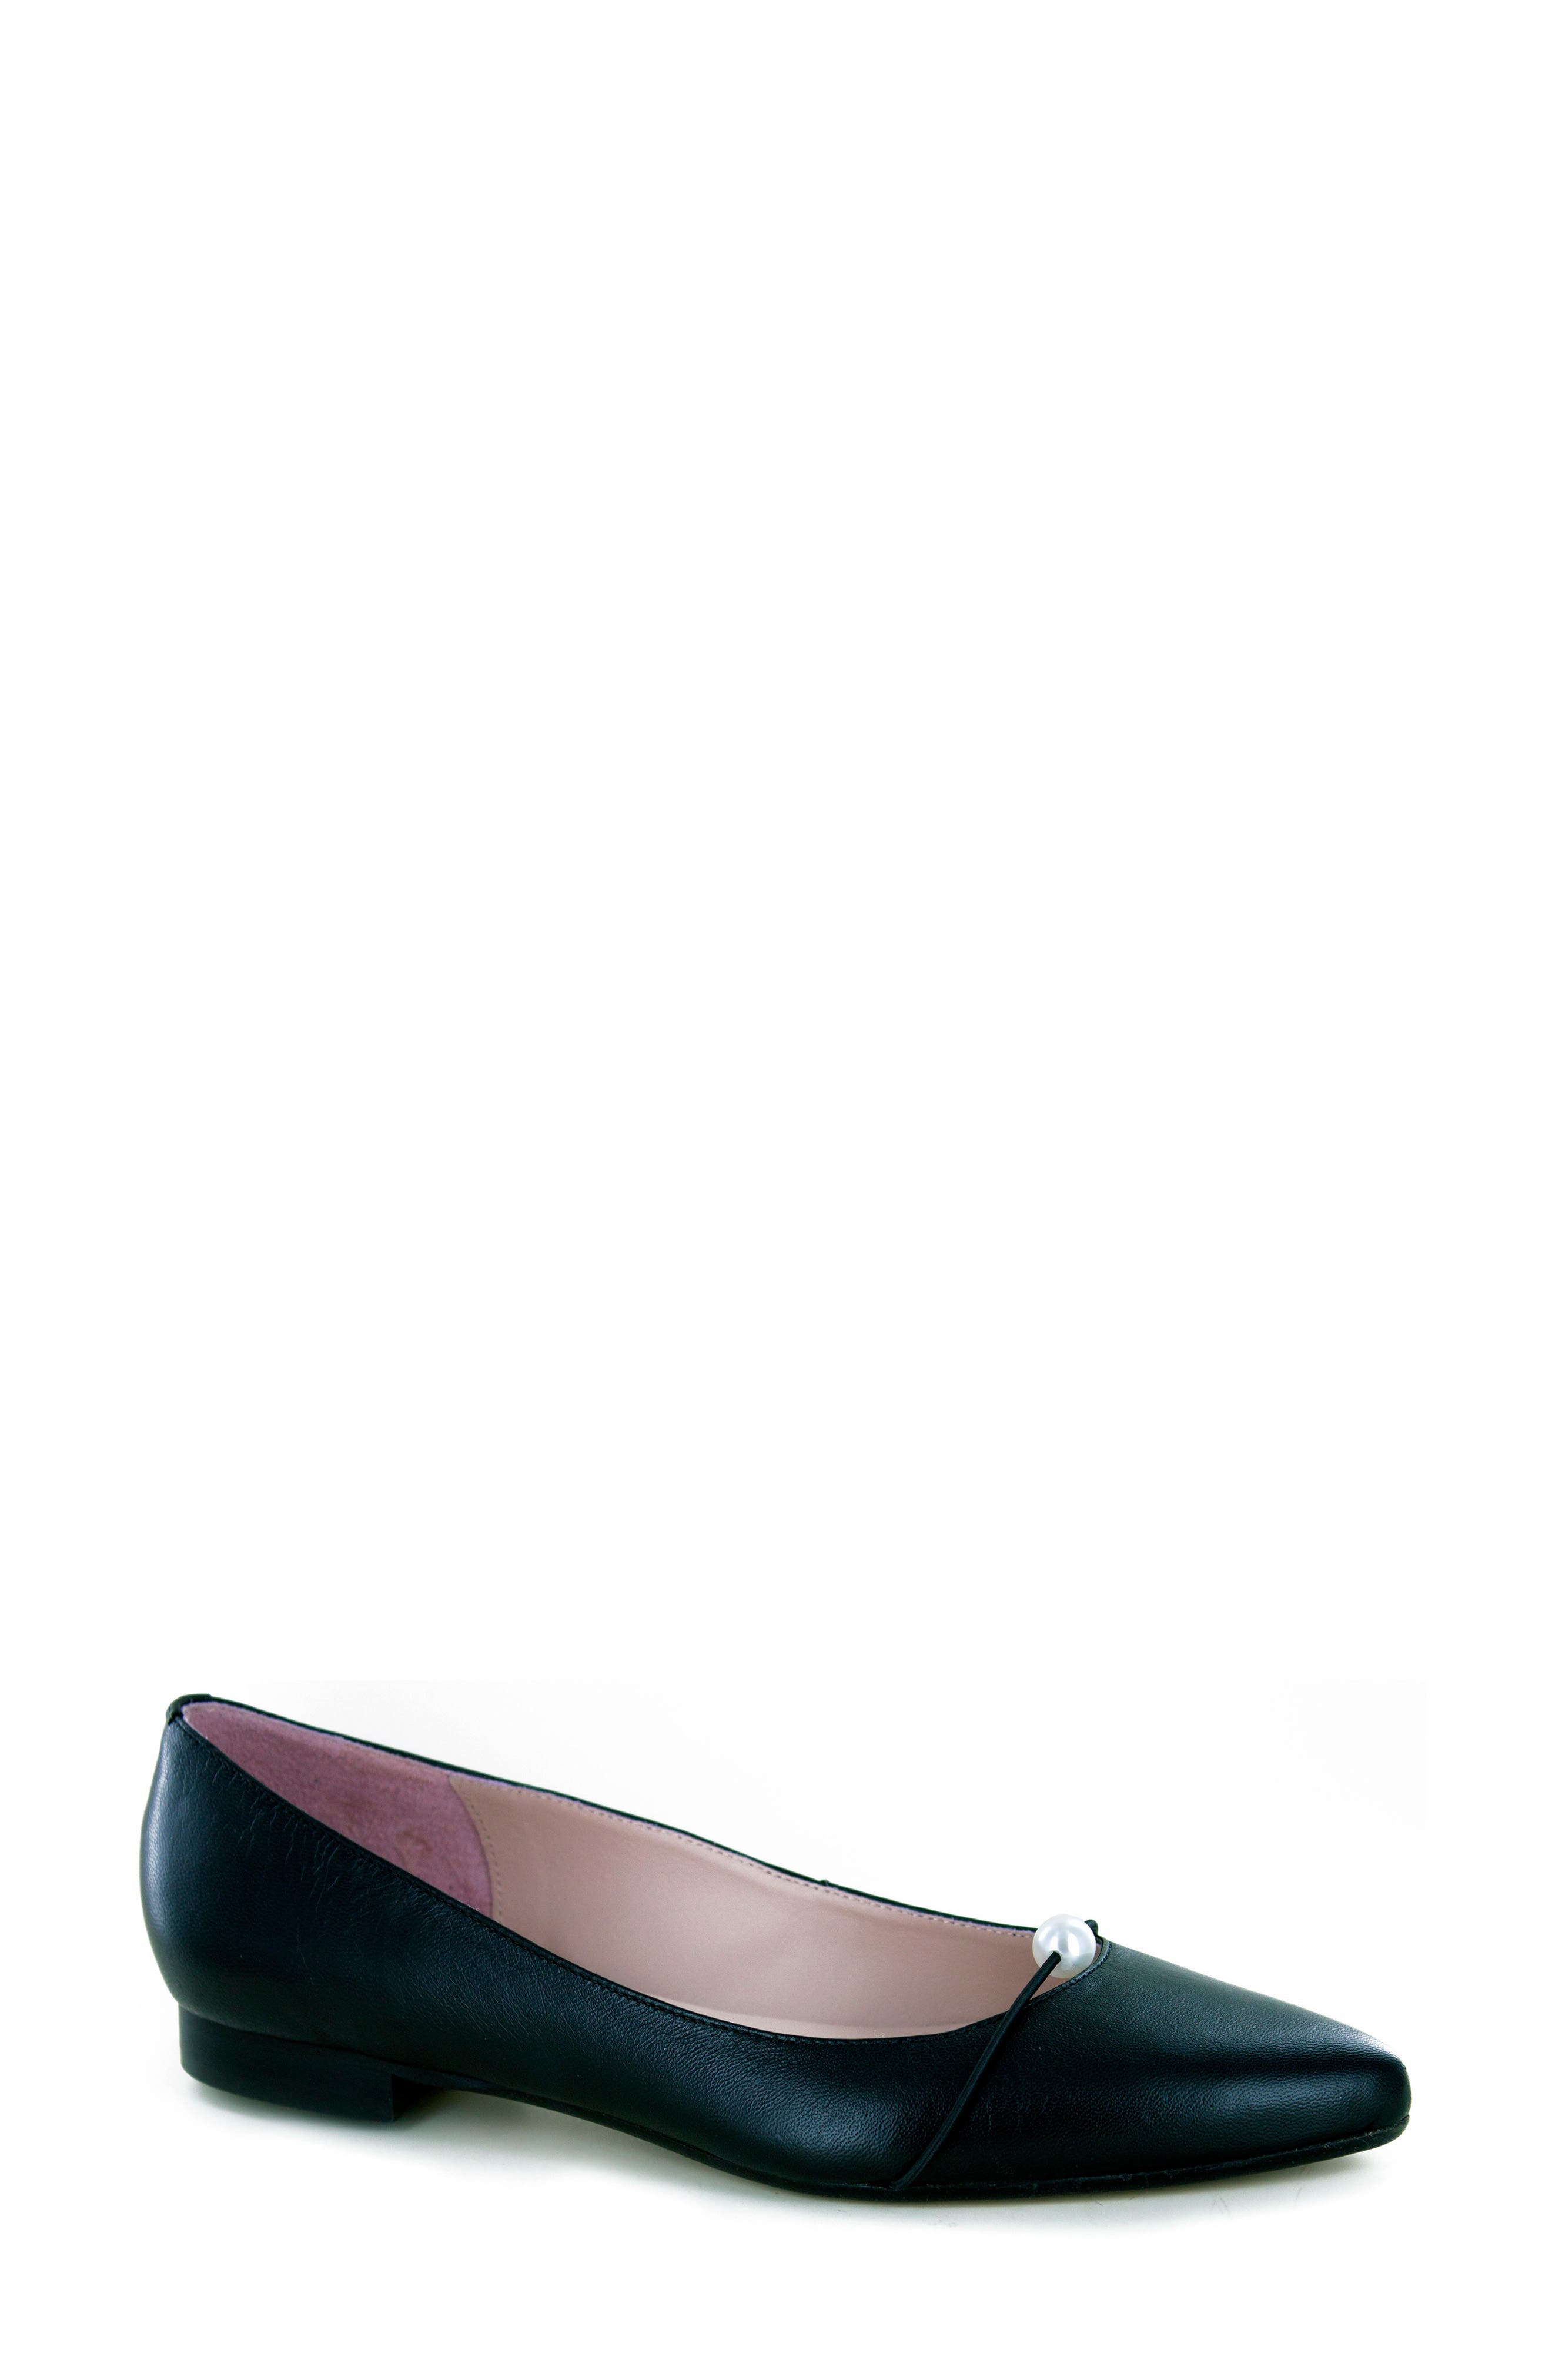 Kaelyn Flat,                         Main,                         color, BLACK LEATHER